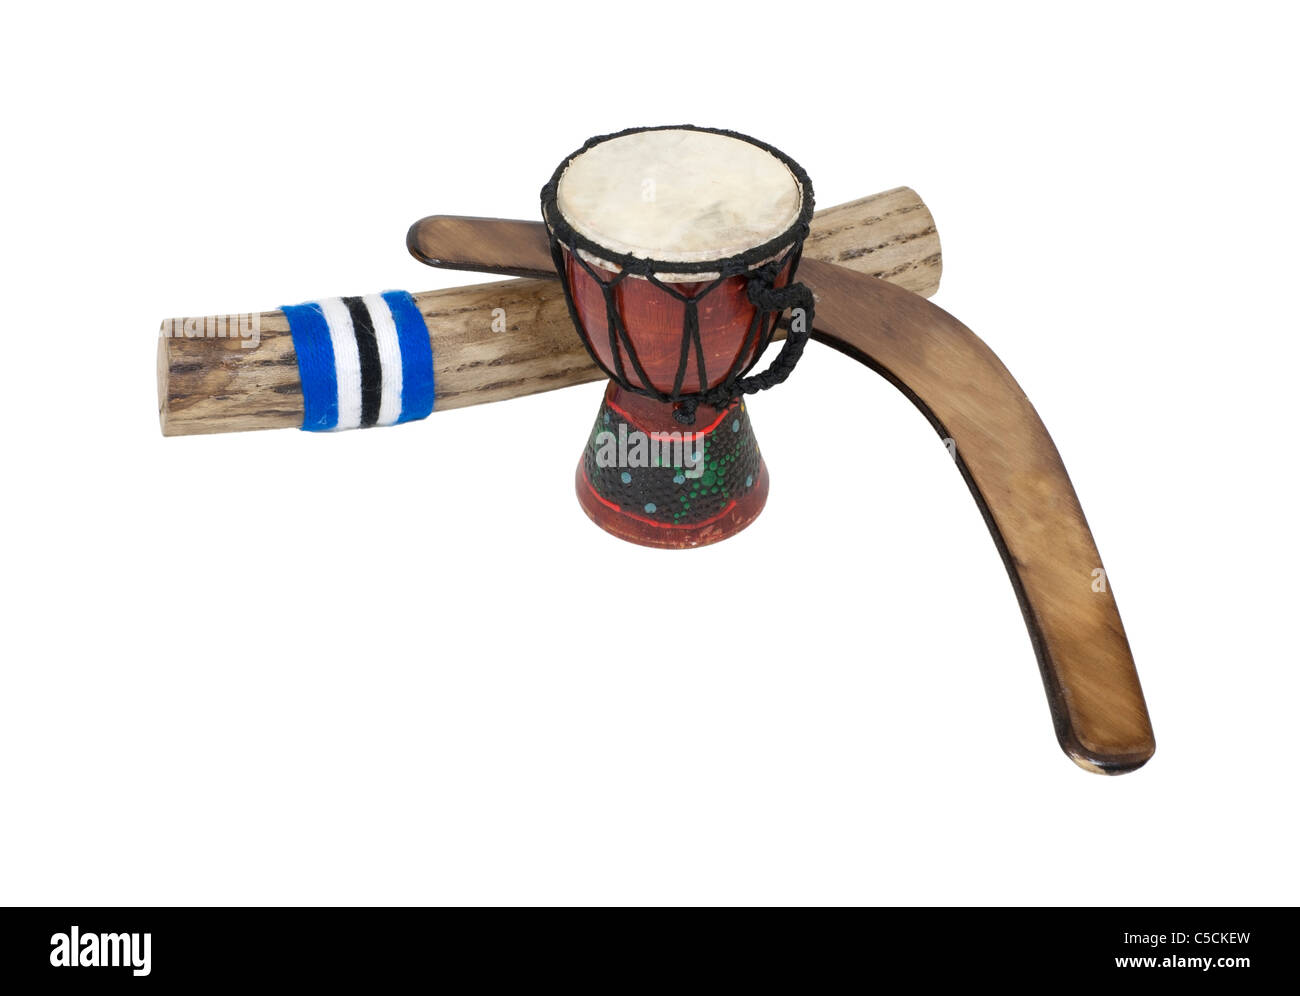 Djembe drum, rainstick and a boomerang made of wood - Stock Image